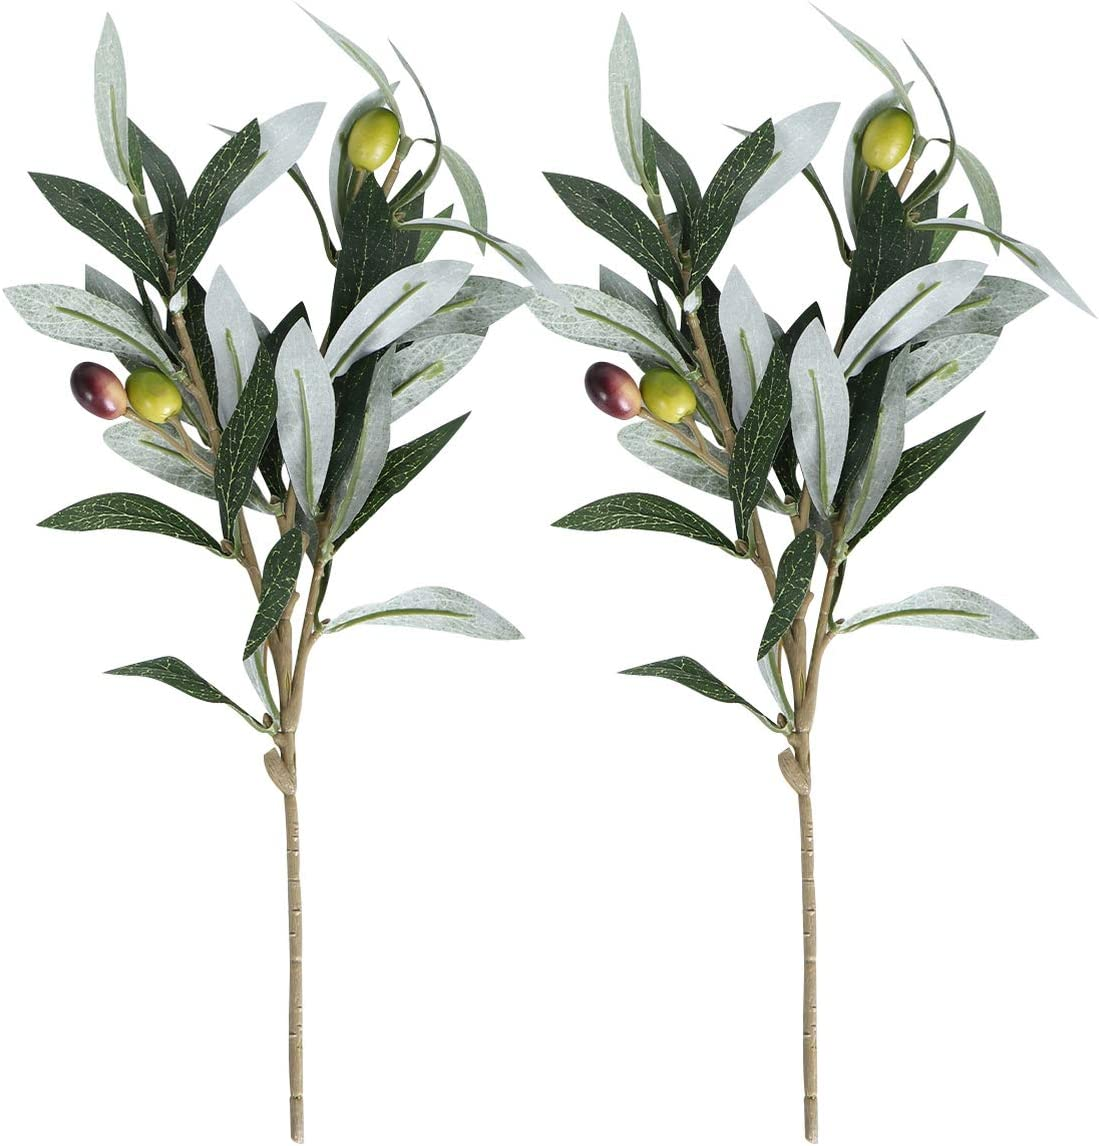 IMIKEYA Artificial Plants Greenery Olive Branches Stems Fake Plants Green Leaves Arrangement Fruits Branch Leaves for Home Office Indoor Outdoor DIY Wreath Decor 2pcs